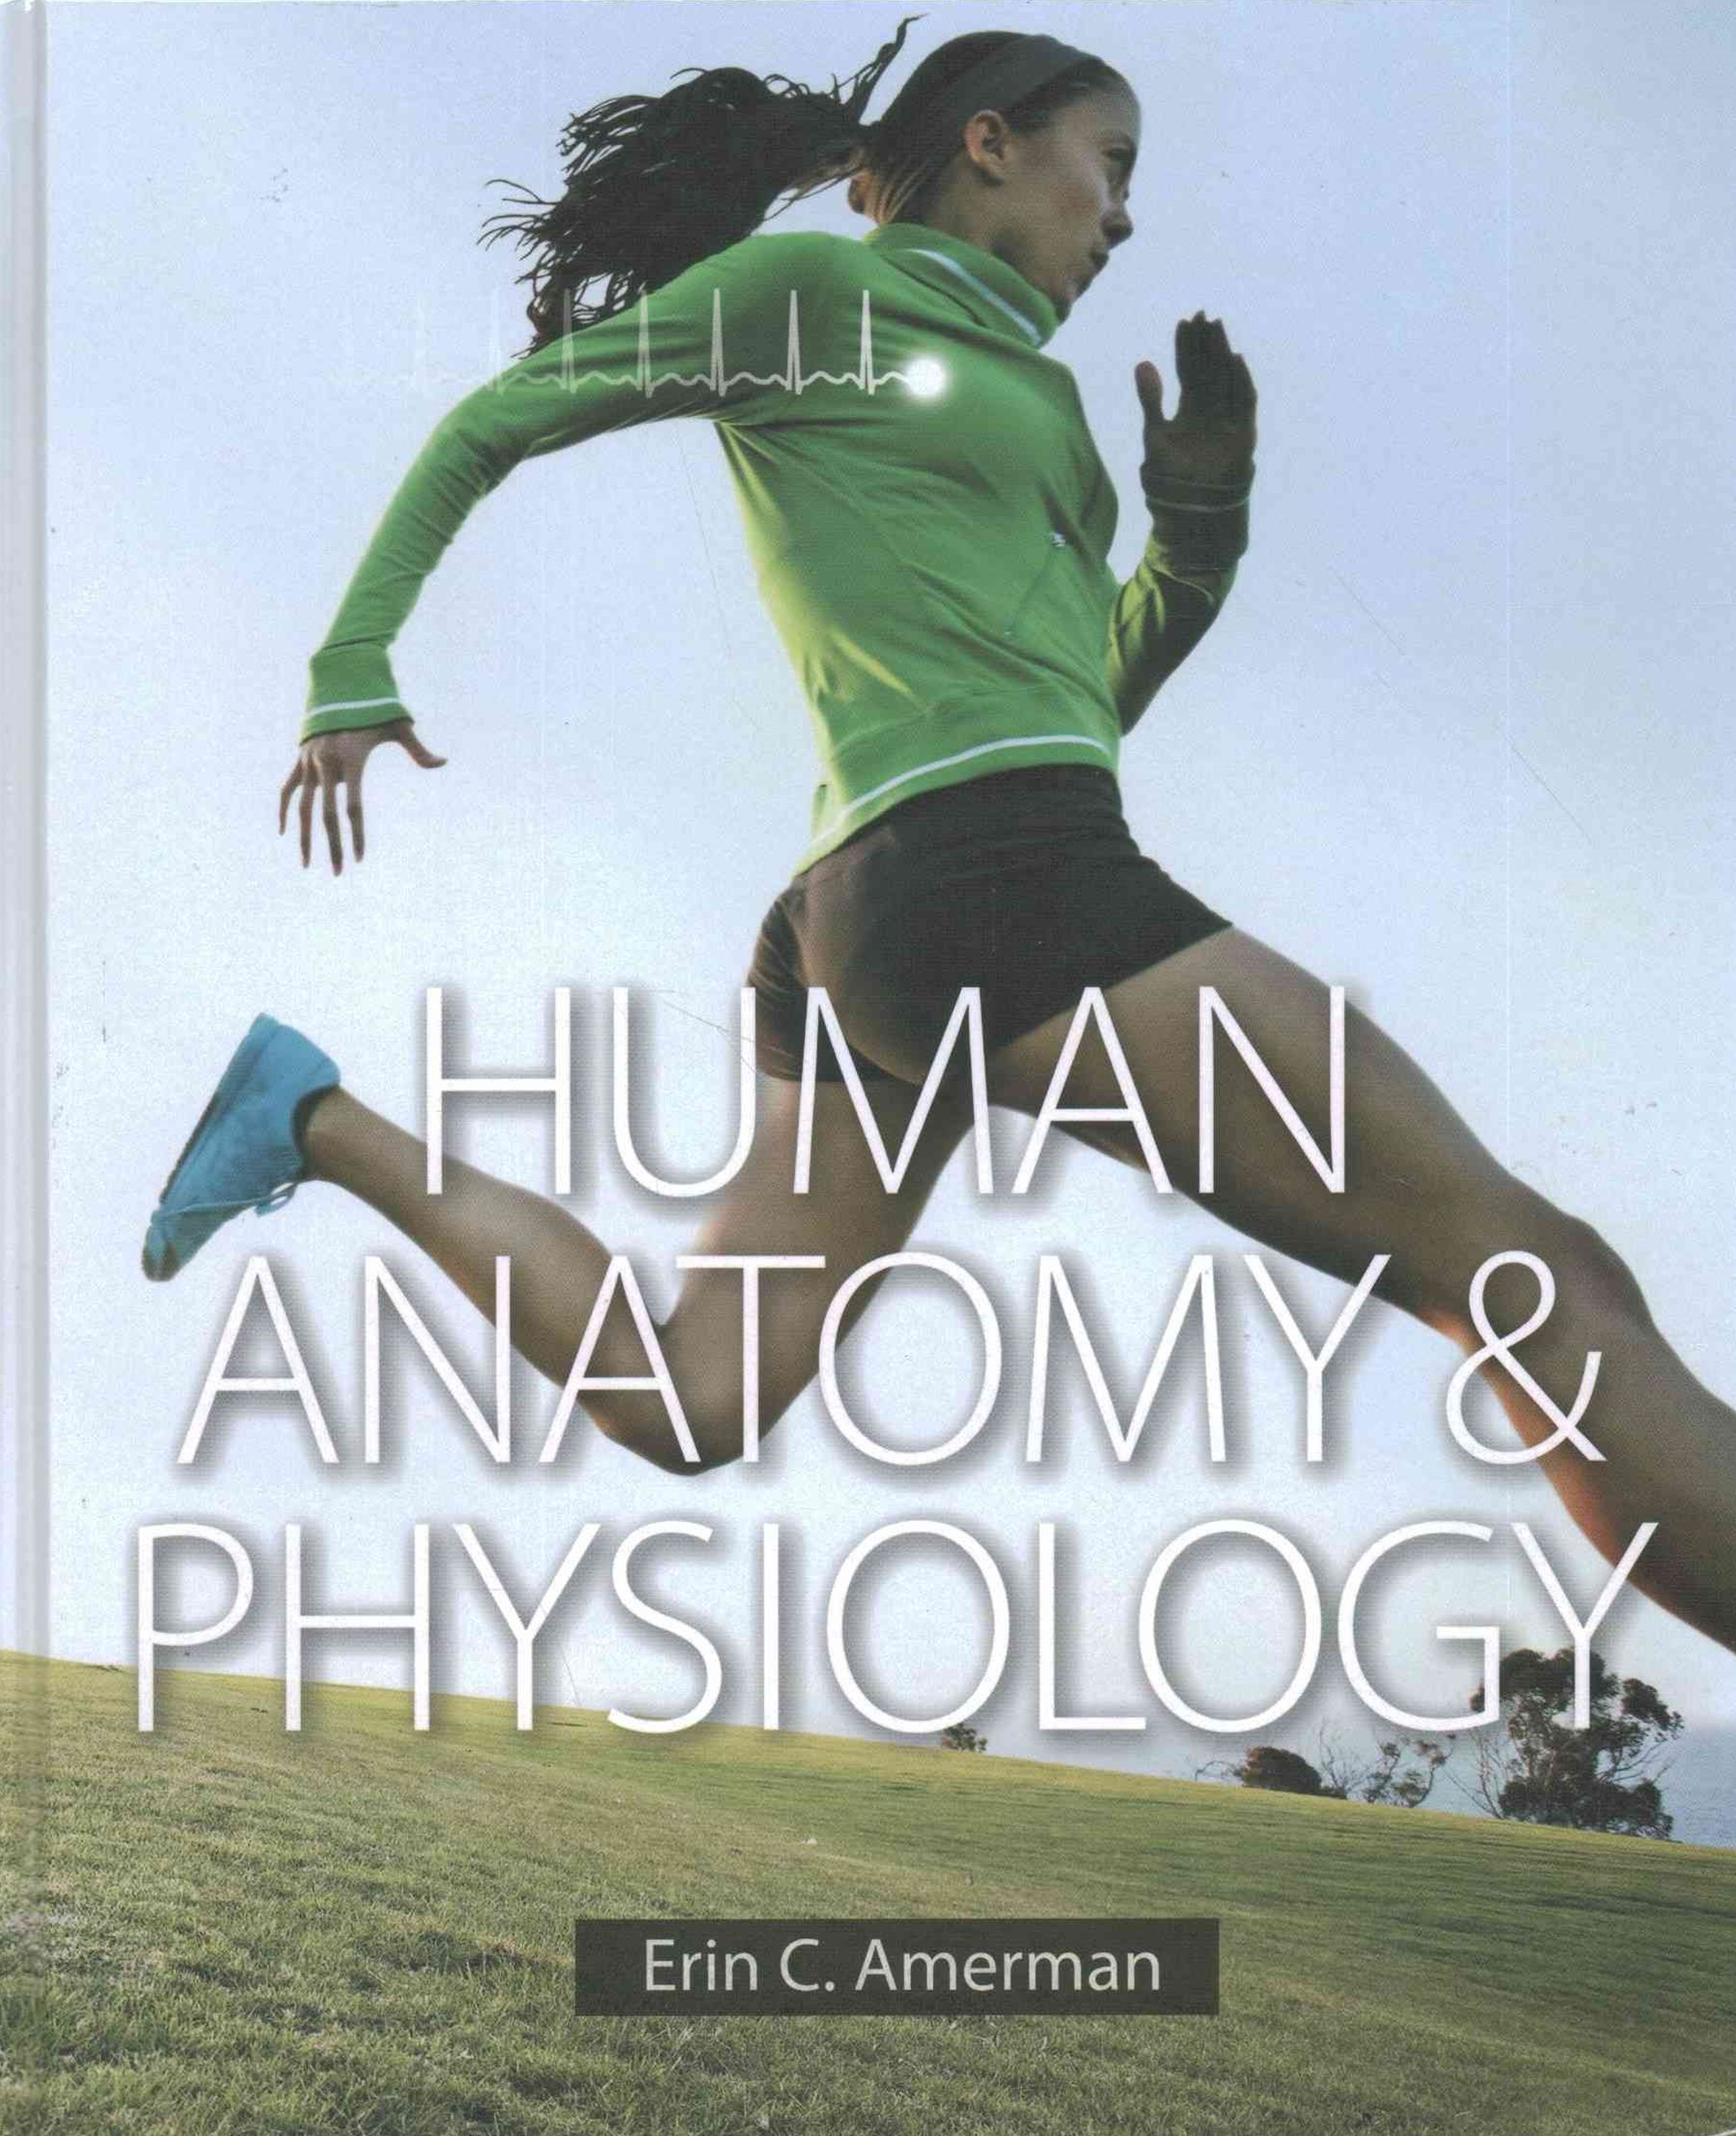 Human Anatatomy and Physiology